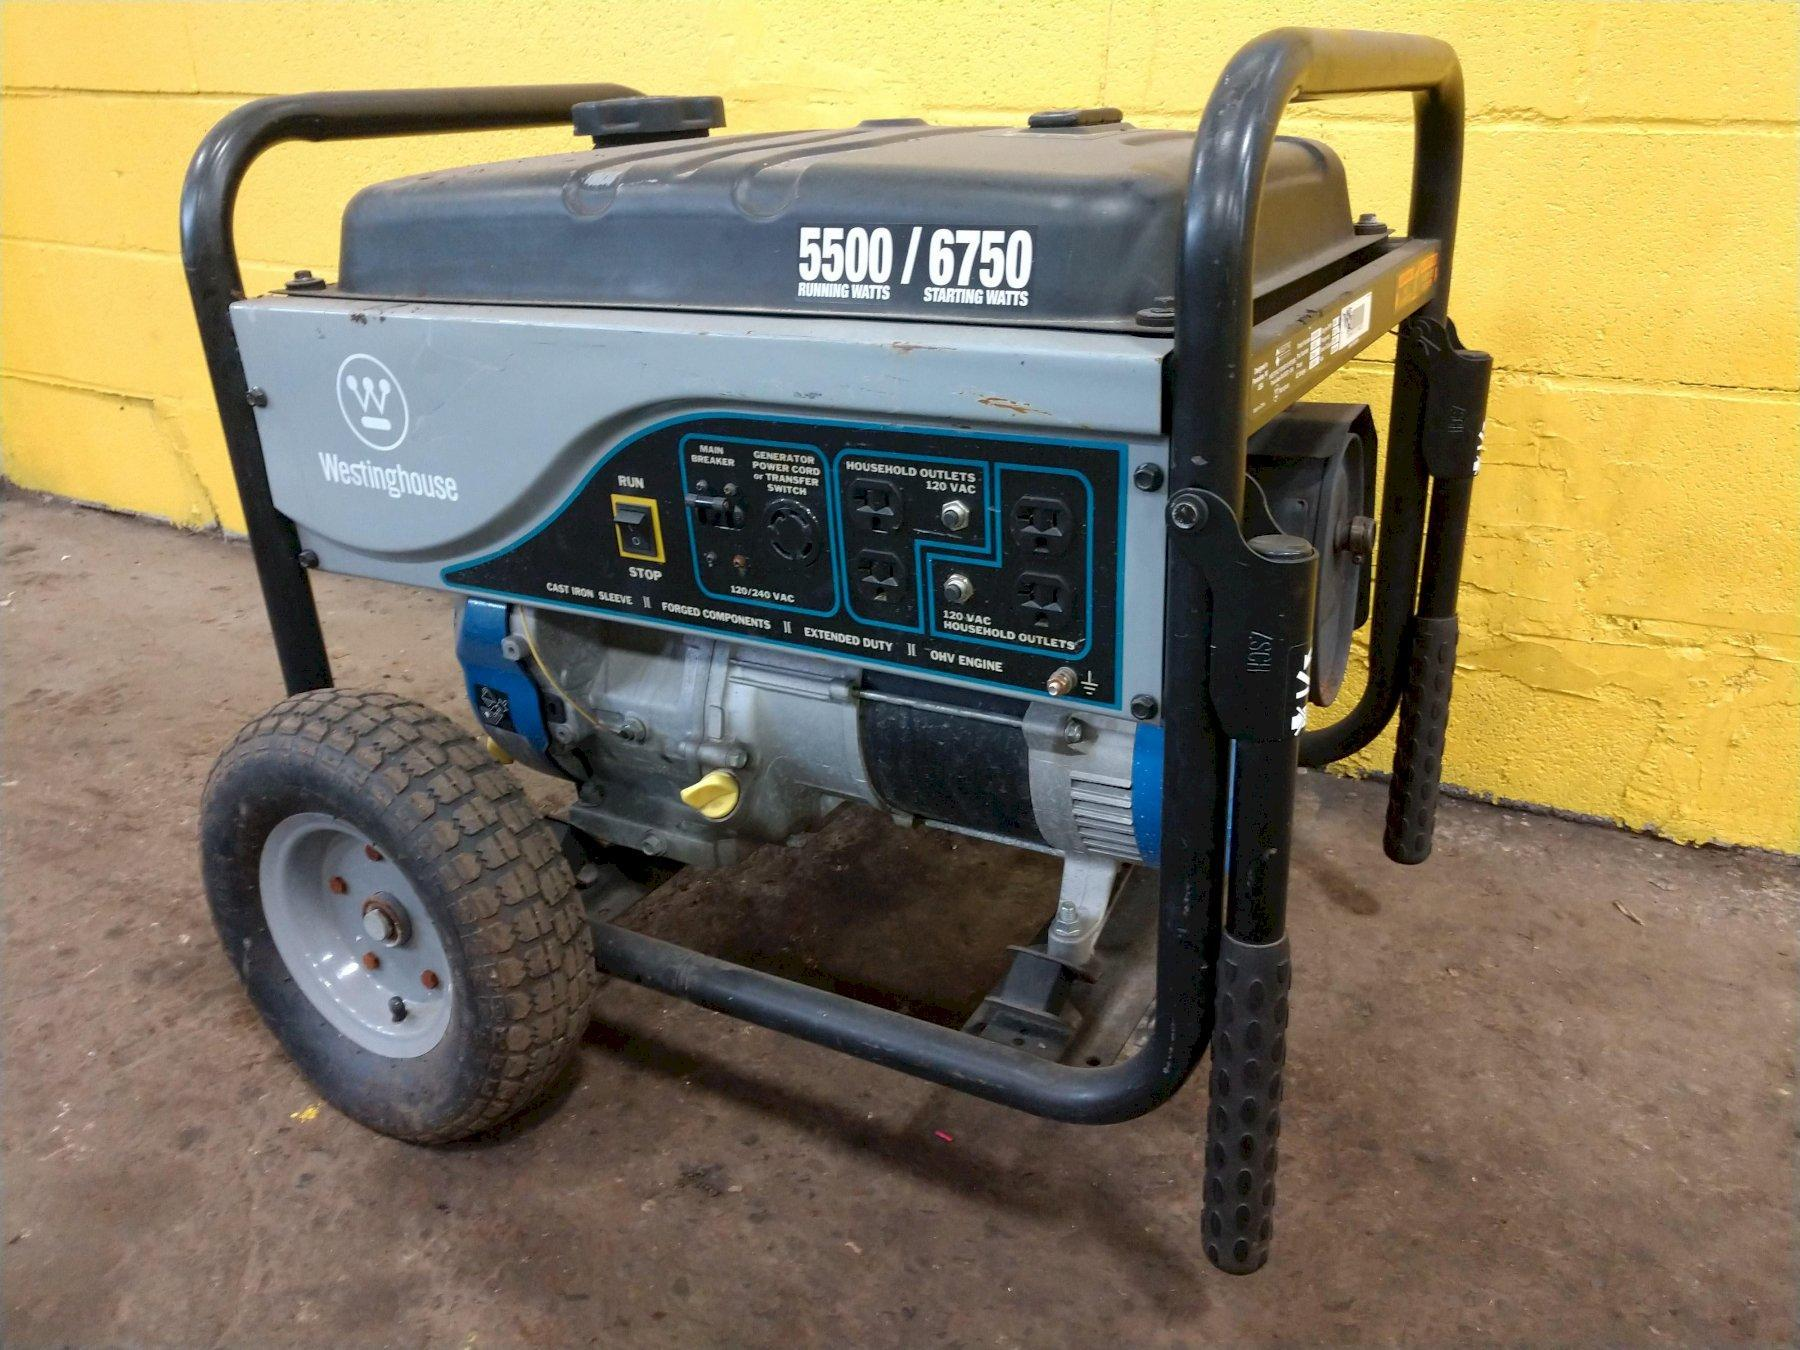 5500 WATT WESTINGHOUSE PORTABLE GENERATOR: STOCK 12995